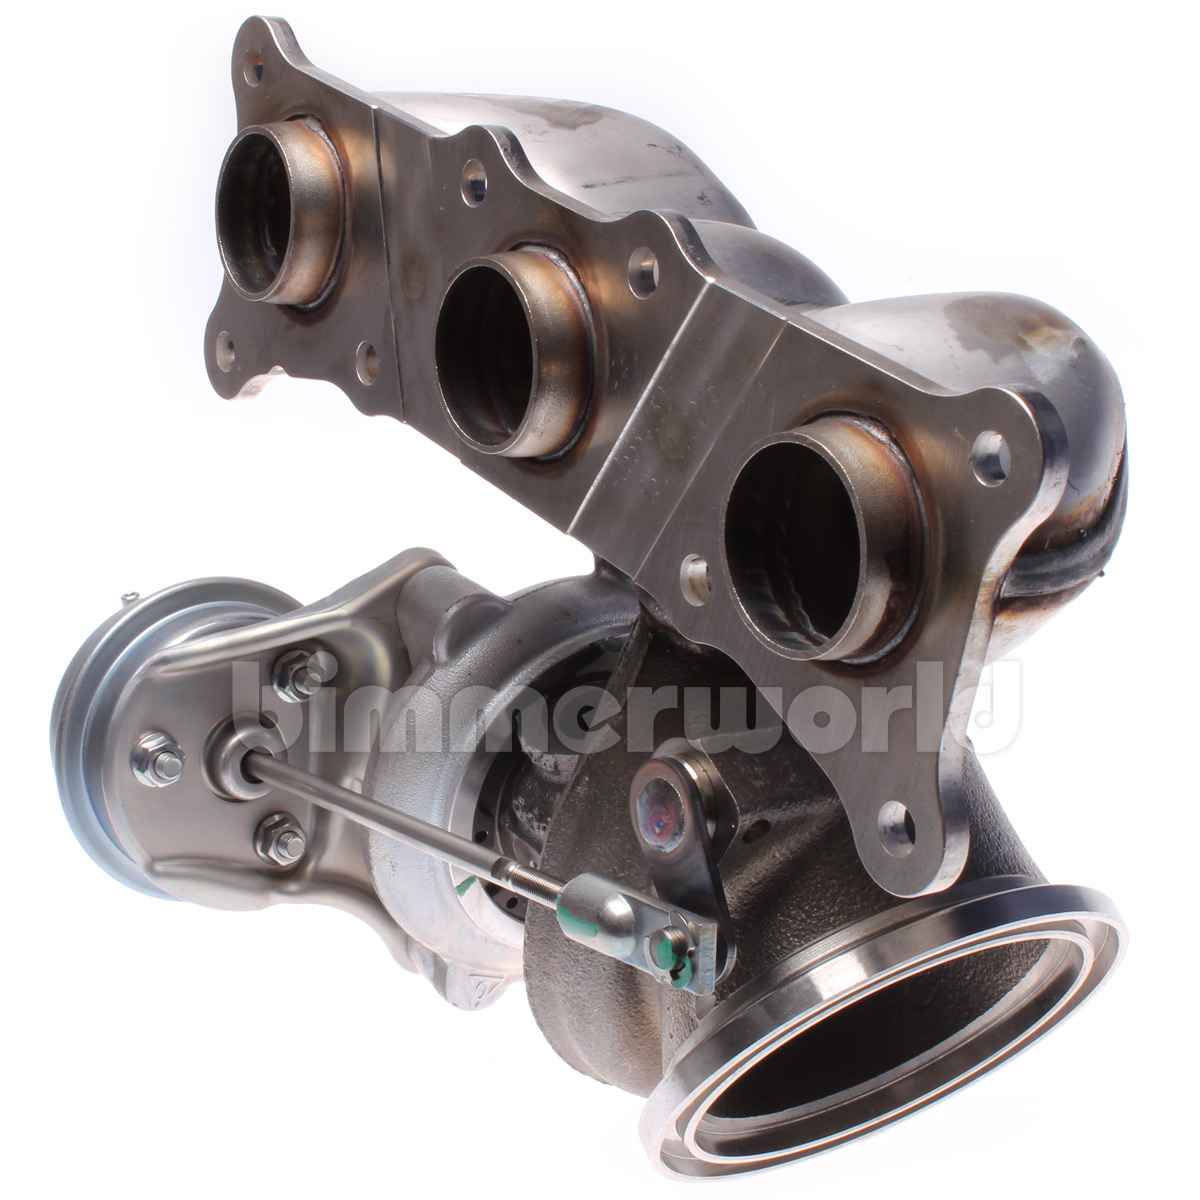 Bmw Turbocharger Front N54 11657649289 E90 E92 E93 335i